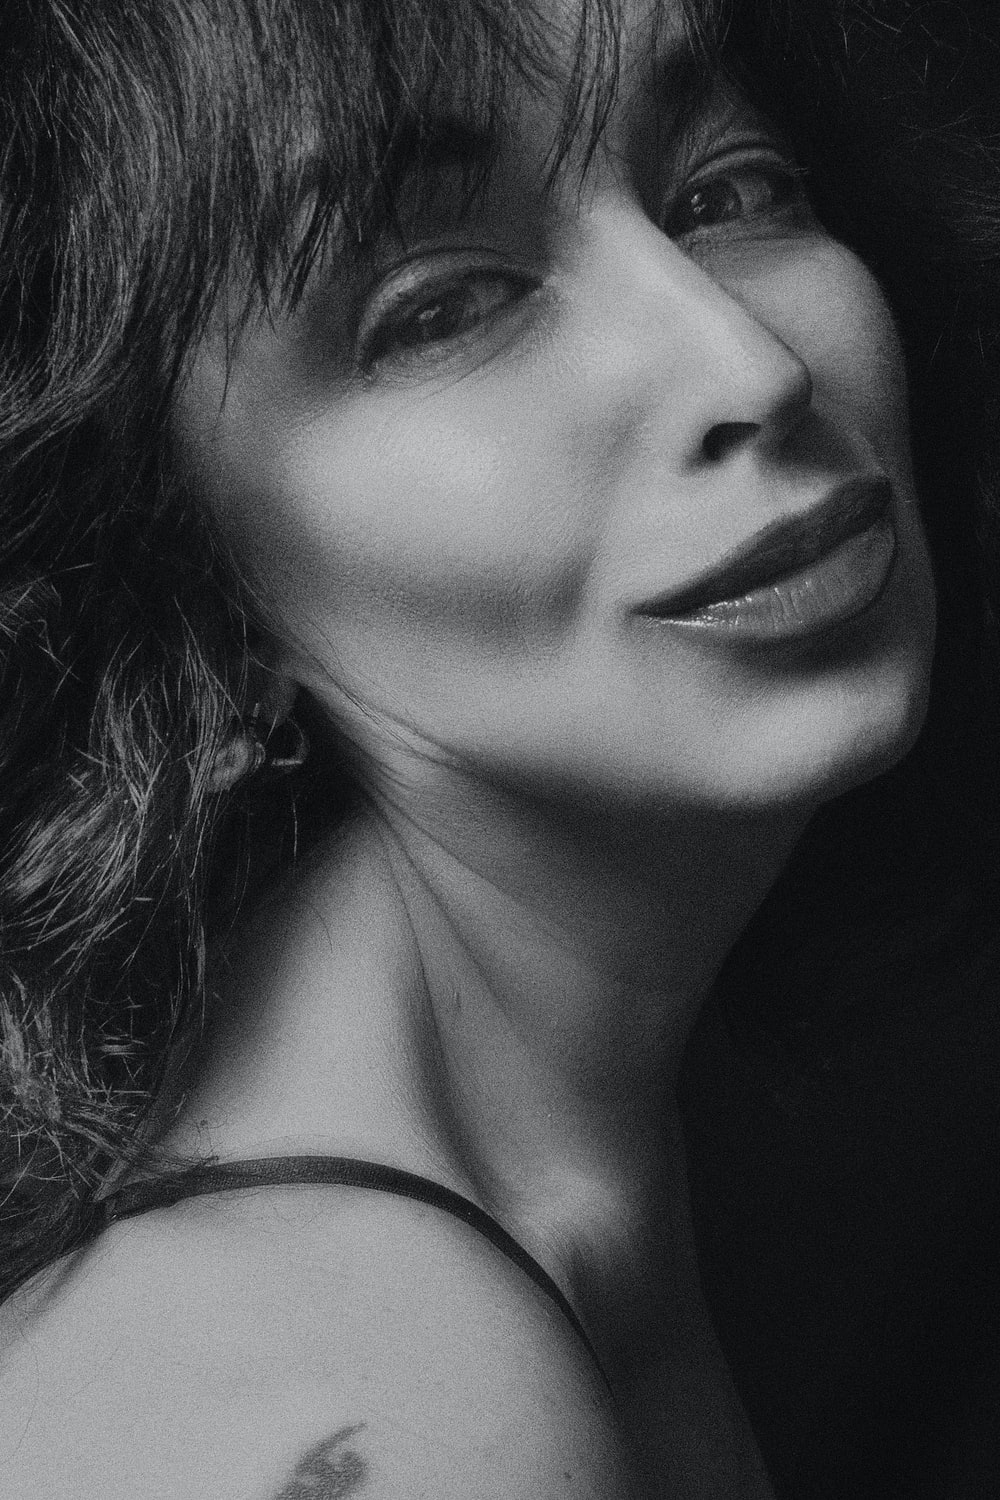 grayscale photography of woman smiling